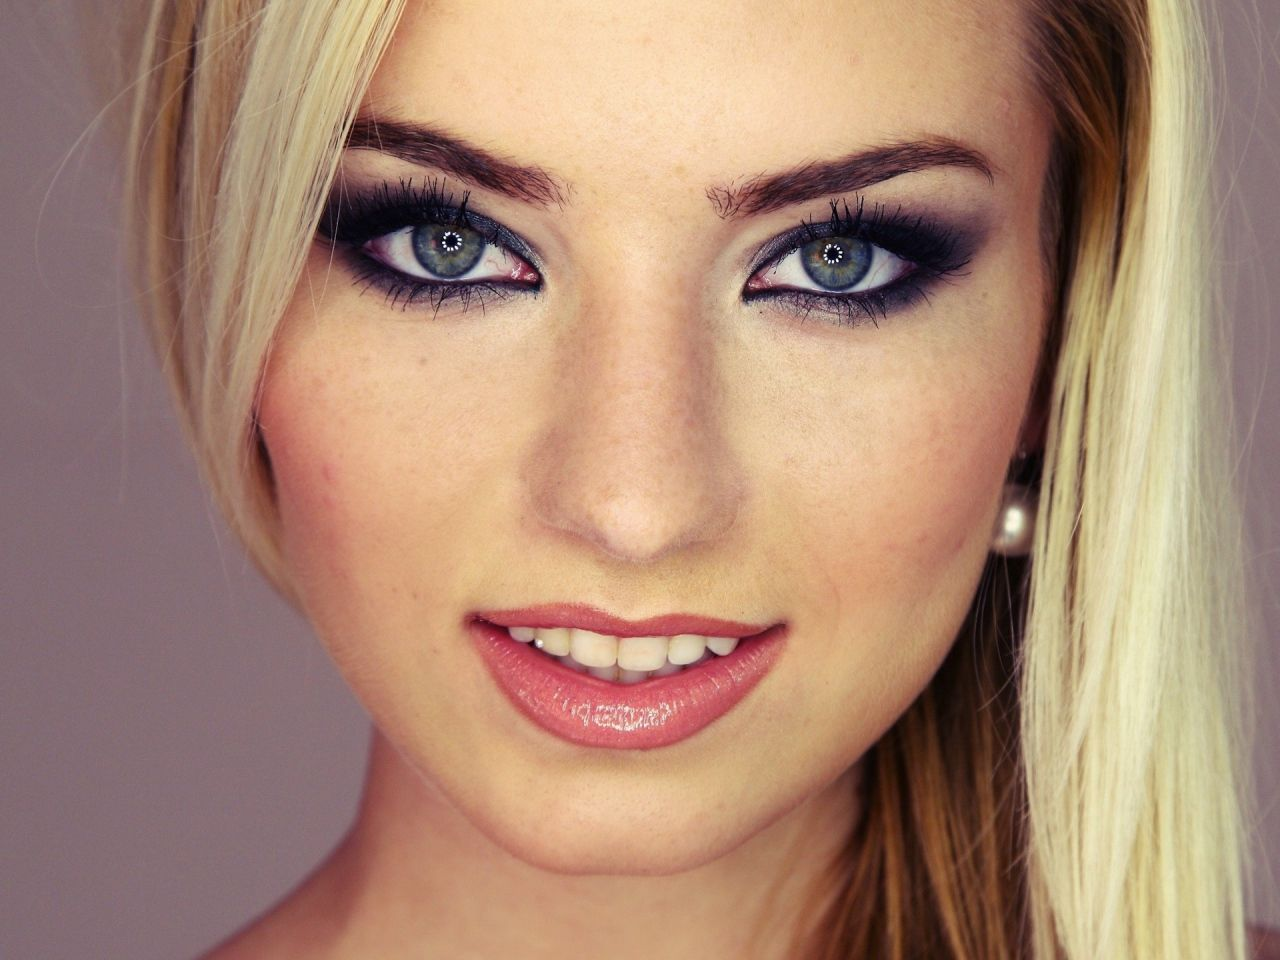 makeup for blue eyes blonde hair - Google Search | Make up for ...